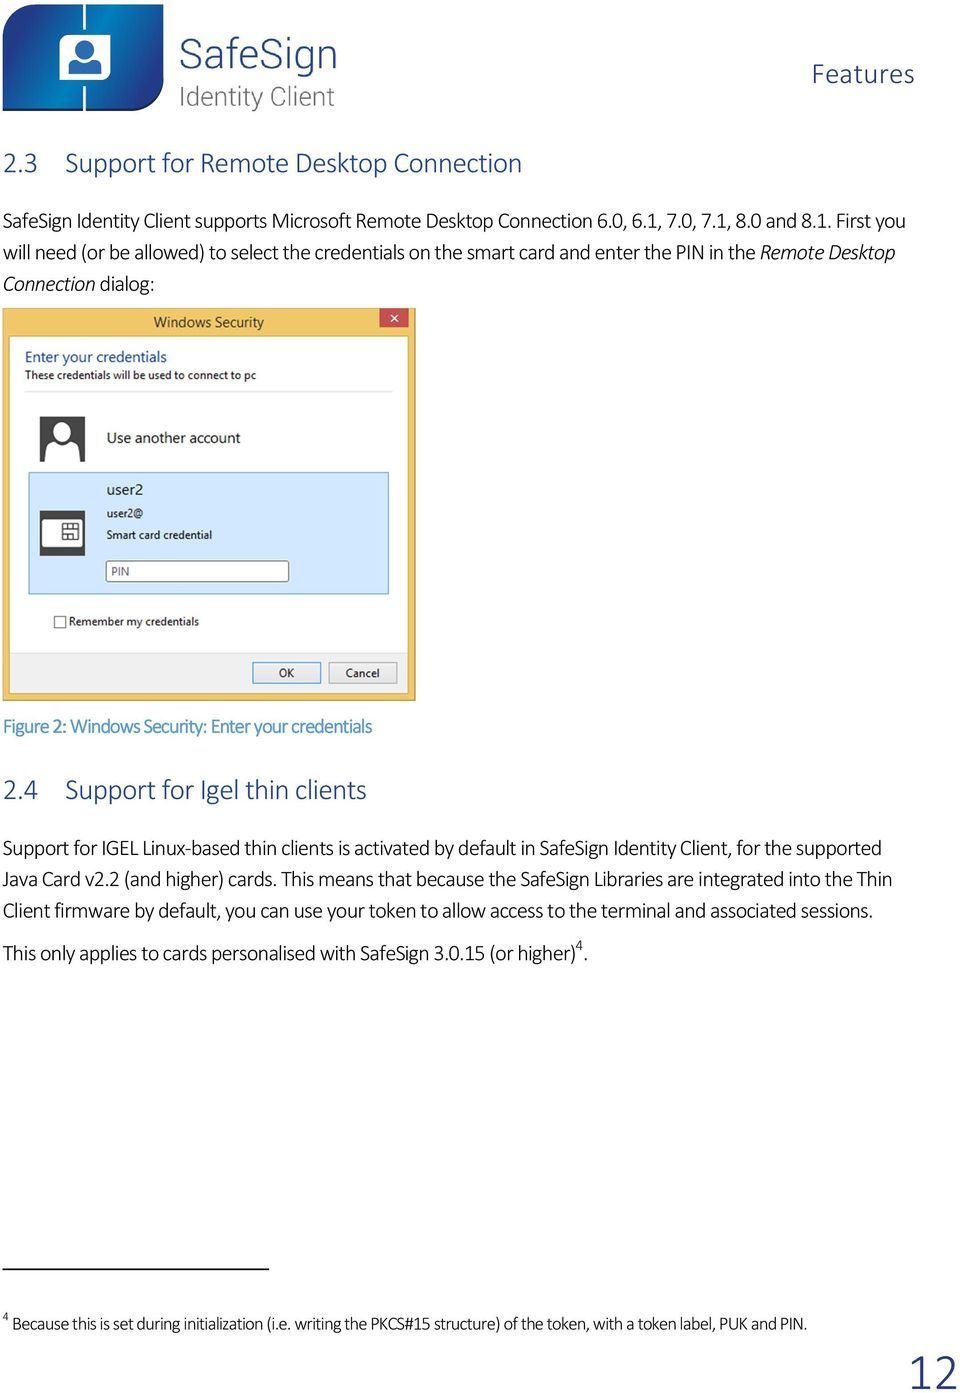 unable to send pdf to outlook adobe reader